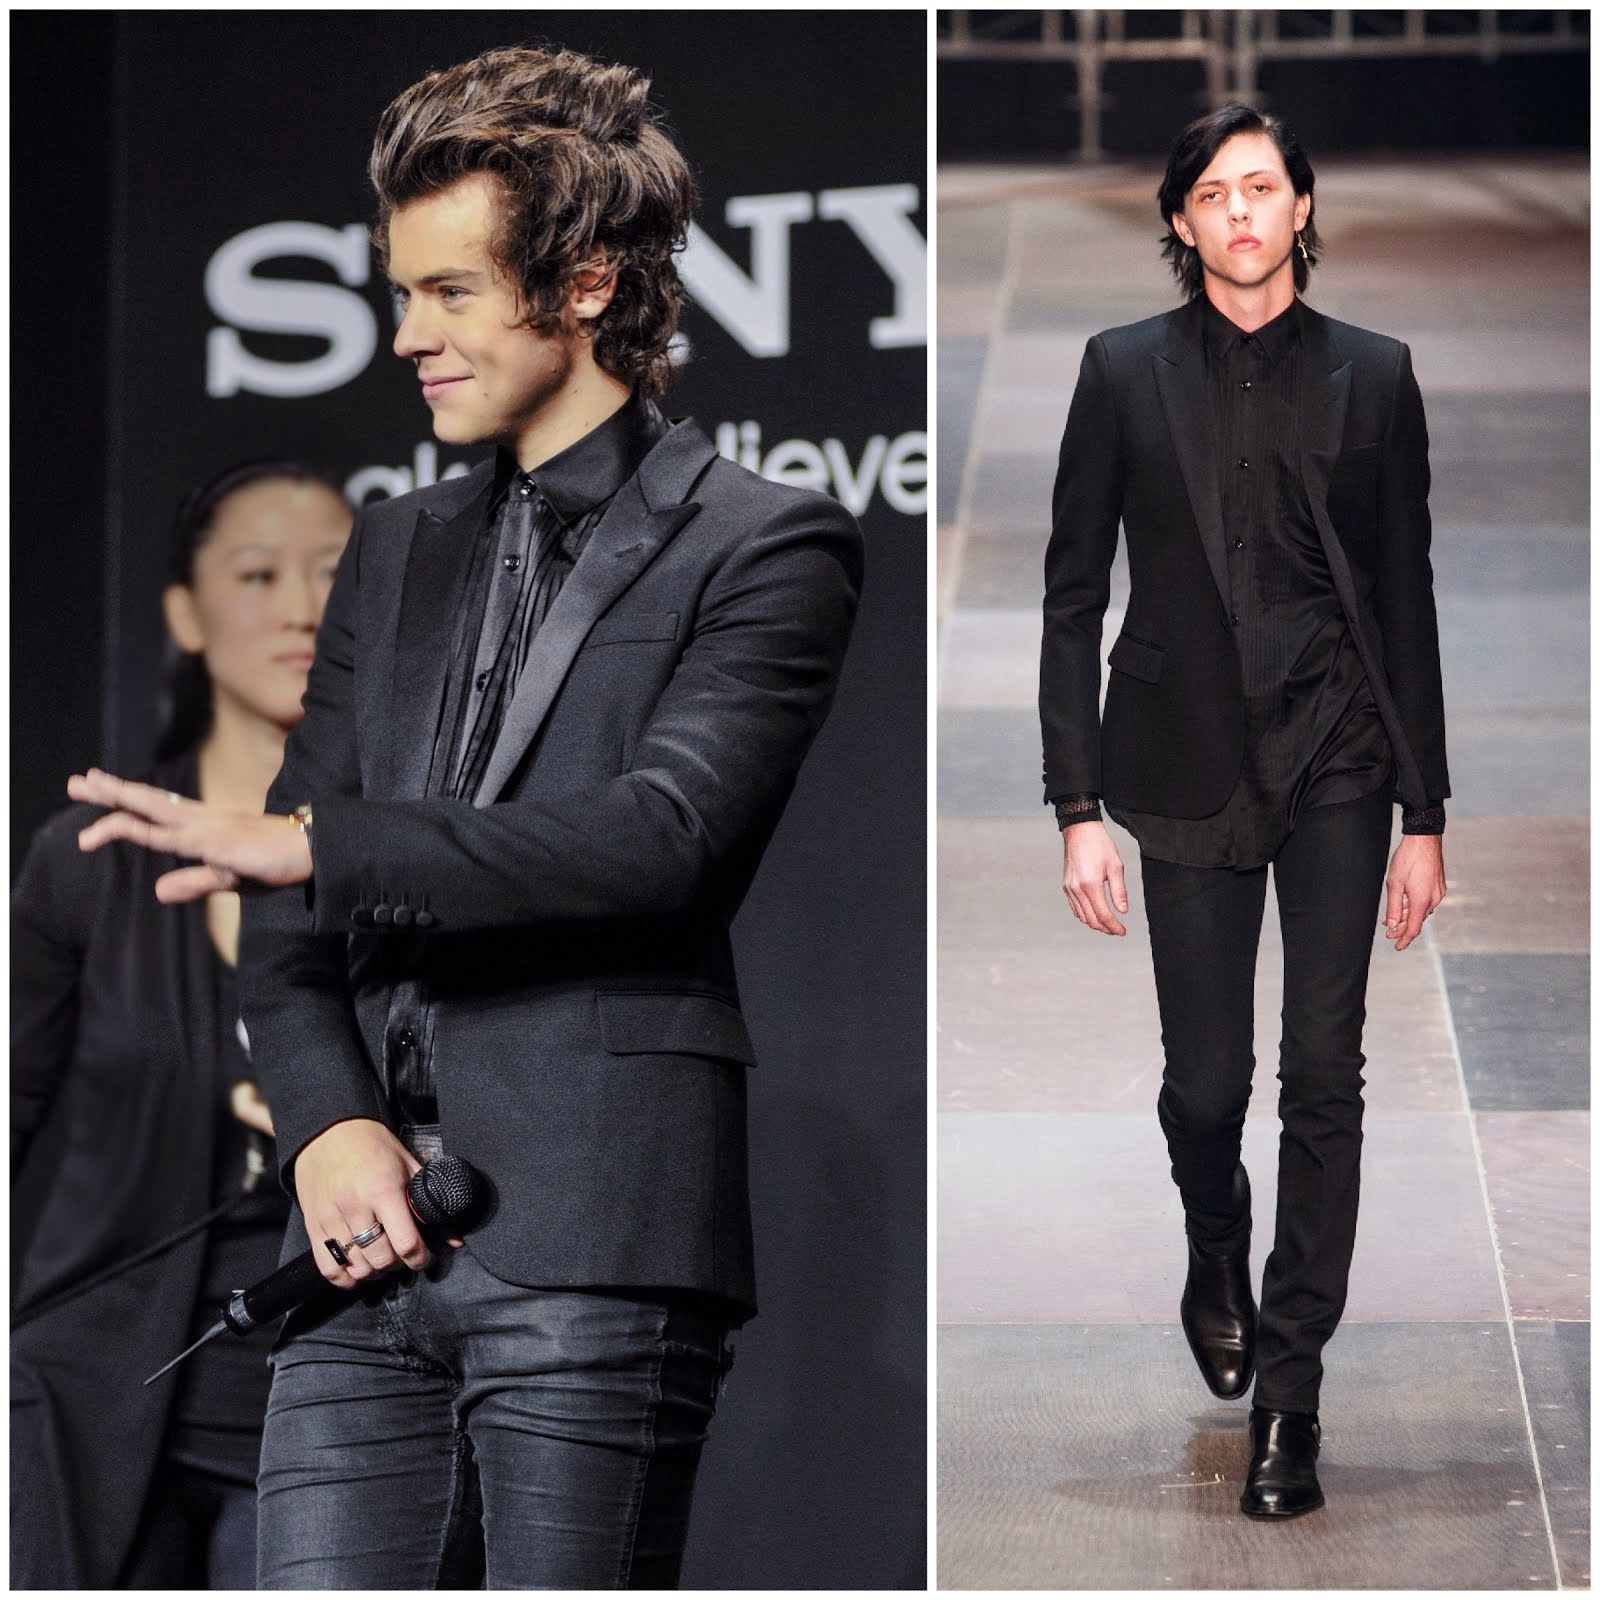 00O00 Menswear Blog: Harry Styles in Saint Laurent - 'The 1Derland: THIS IS US' promotion, Japan